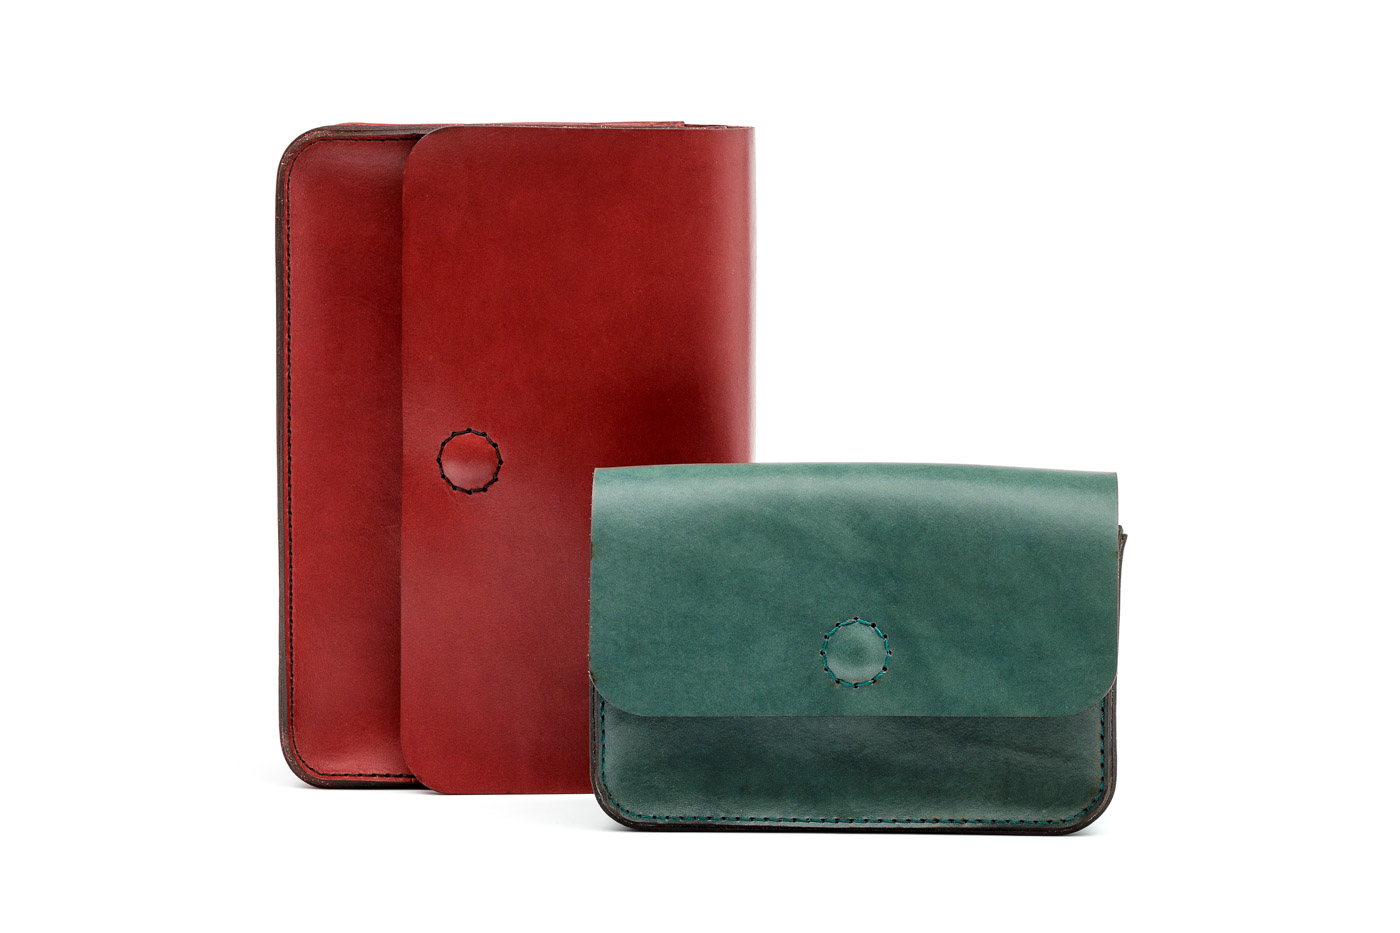 leather bags in various colors